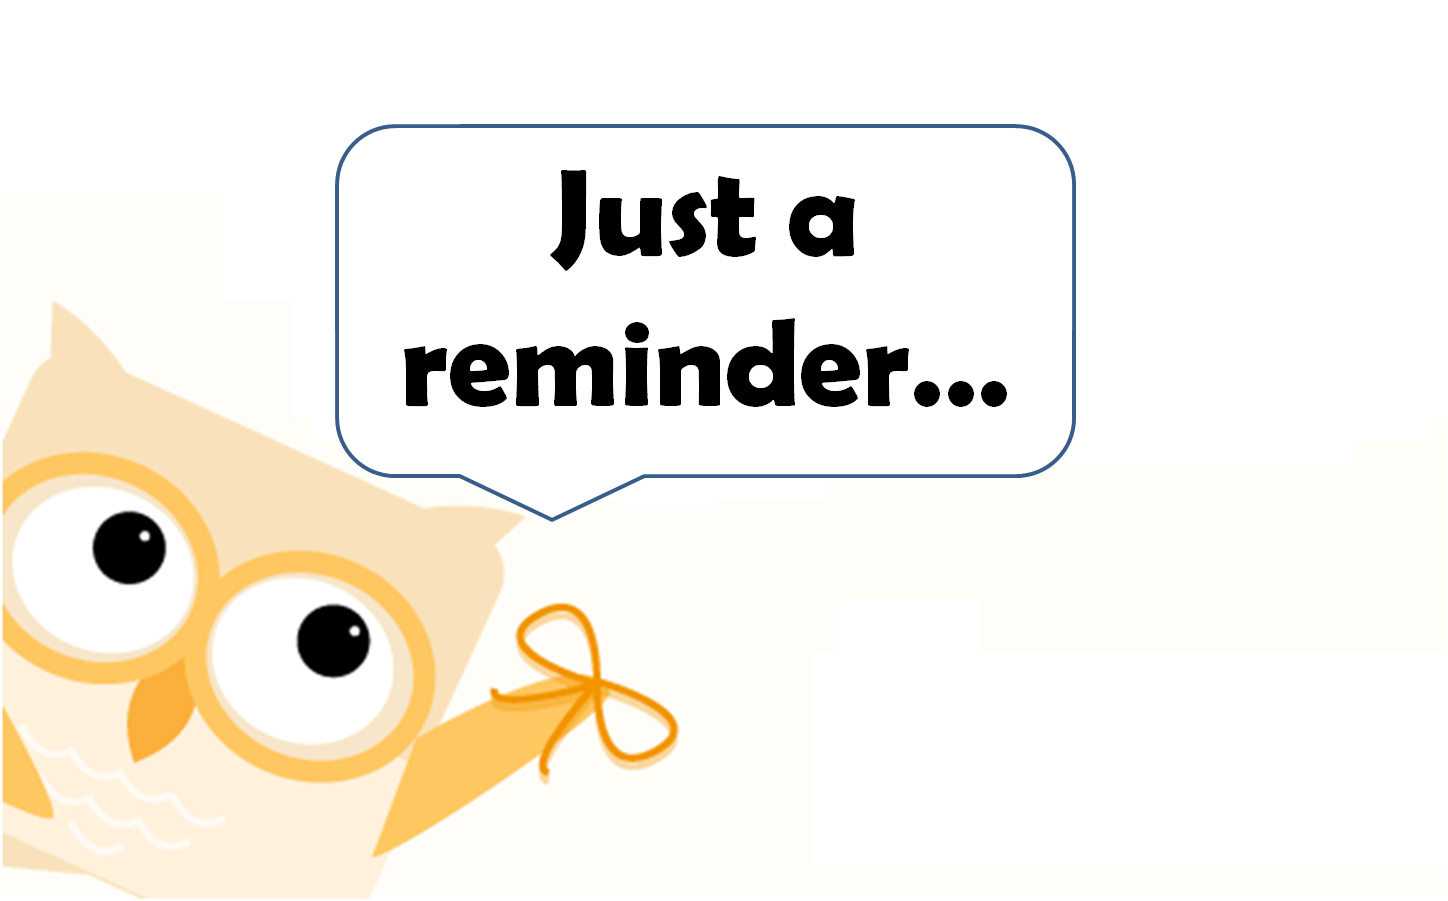 Meeting clipart meeting reminder Clipartfest friendly clipart Just reminder